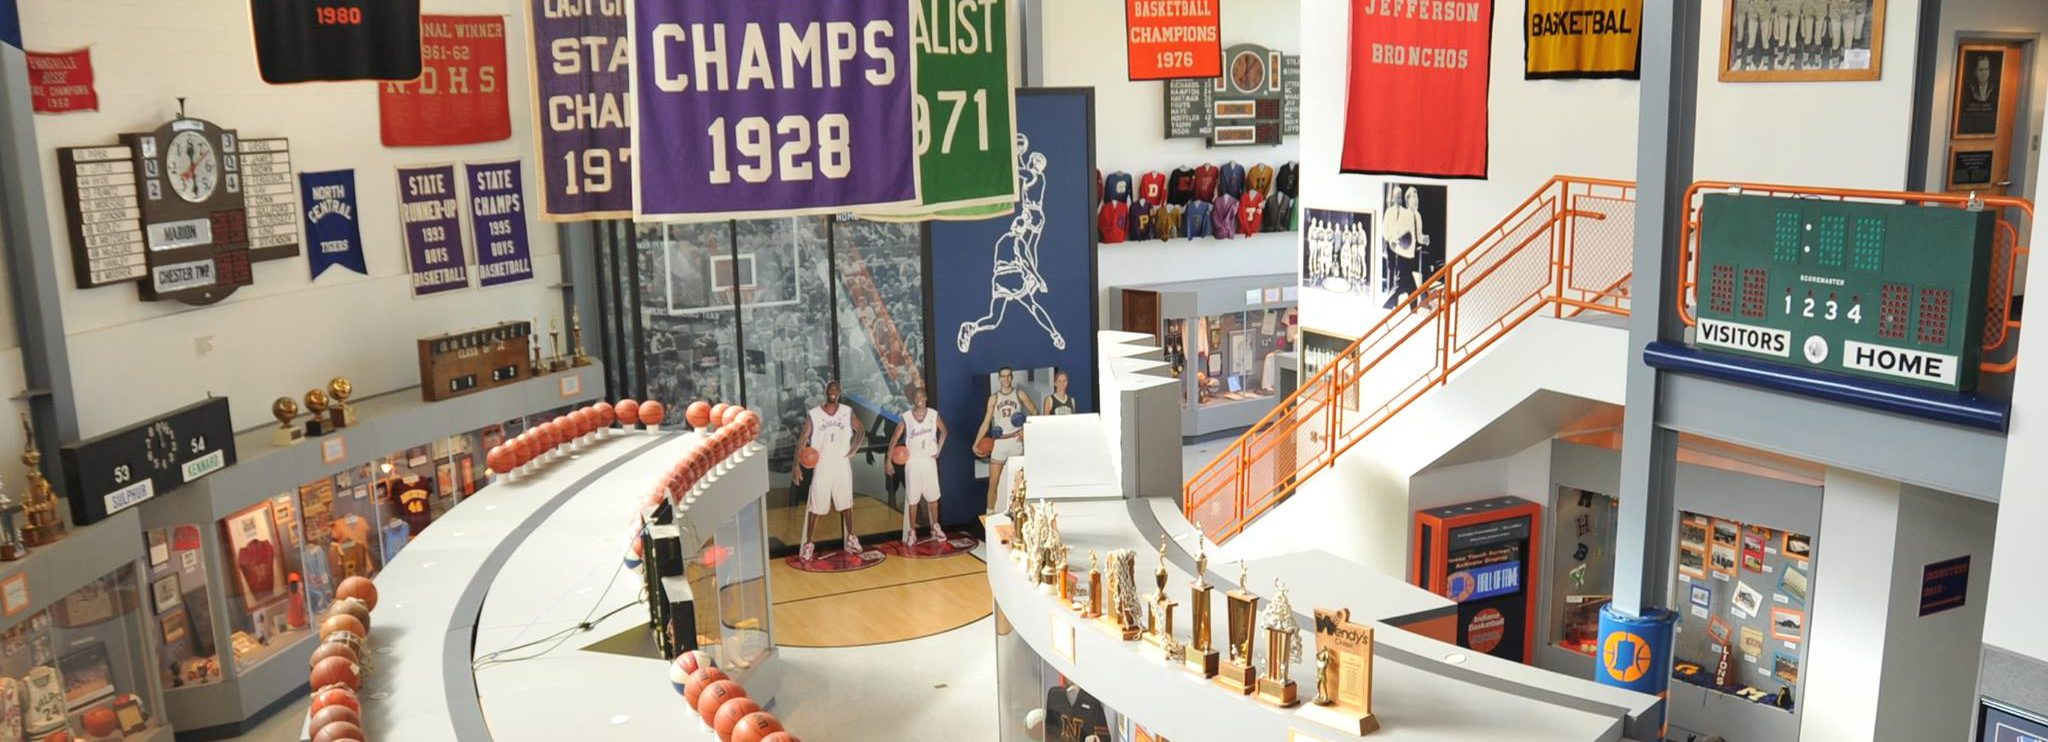 Memorabilia including jerseys, trophies, pendants, and plaques on display at the Indiana Basketball Hall of Fame